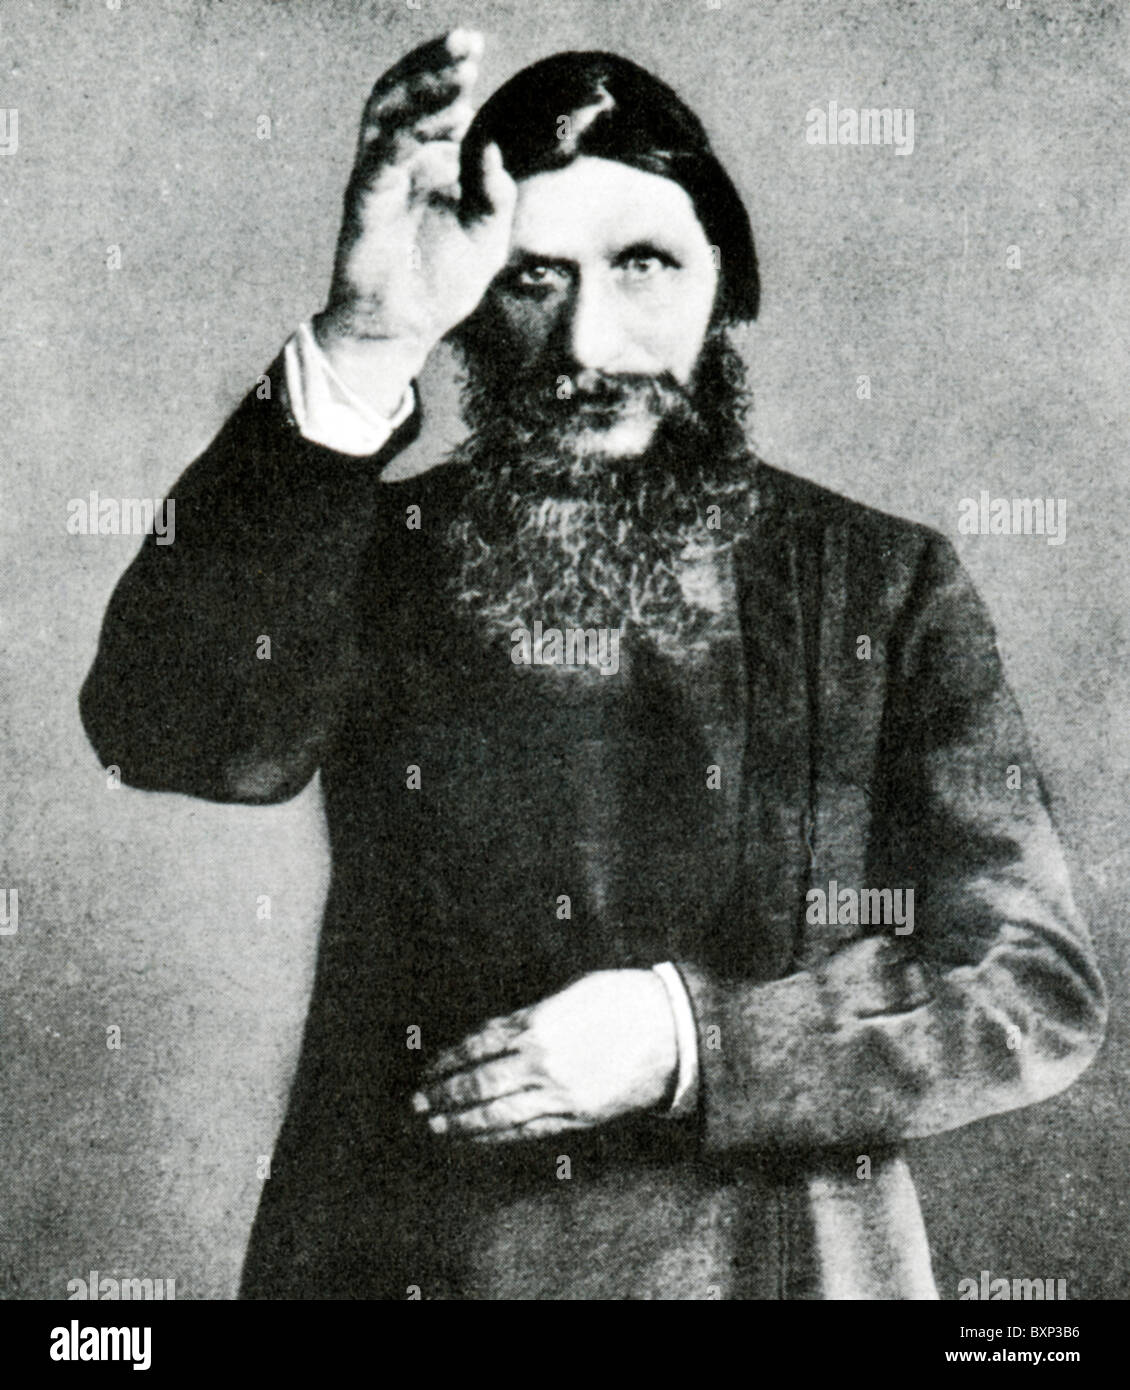 Rasputin, portrait of the religious mystic who had such an influence over the Royal Family in Tsarist Russia - Stock Image